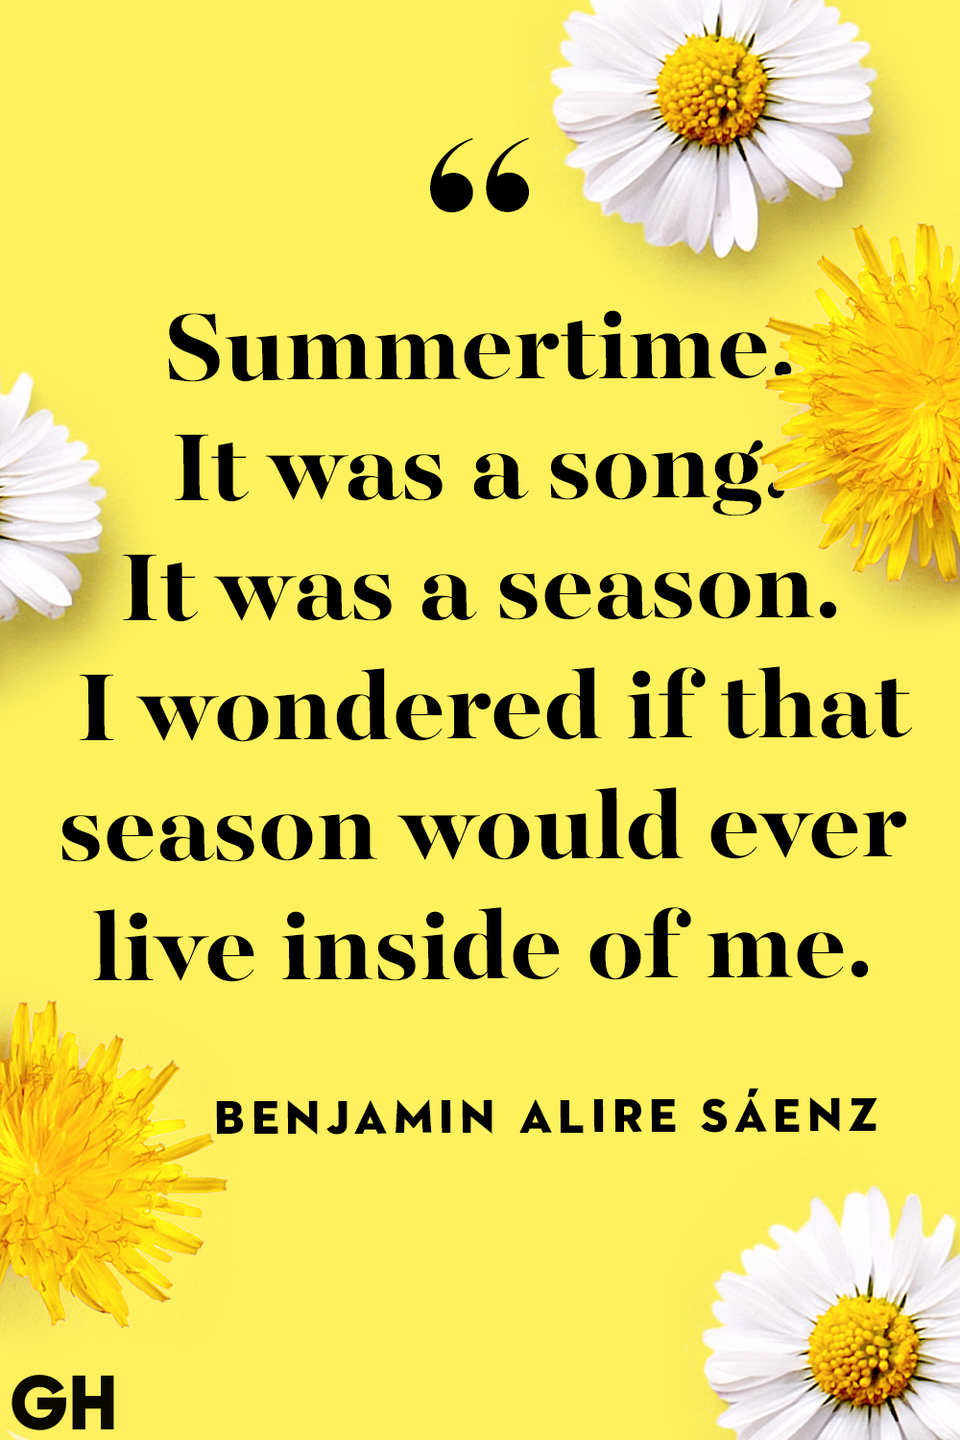 """<p>""""Summertime. It was a song. It was a season. I wondered if that season would ever live inside of me.""""</p>"""